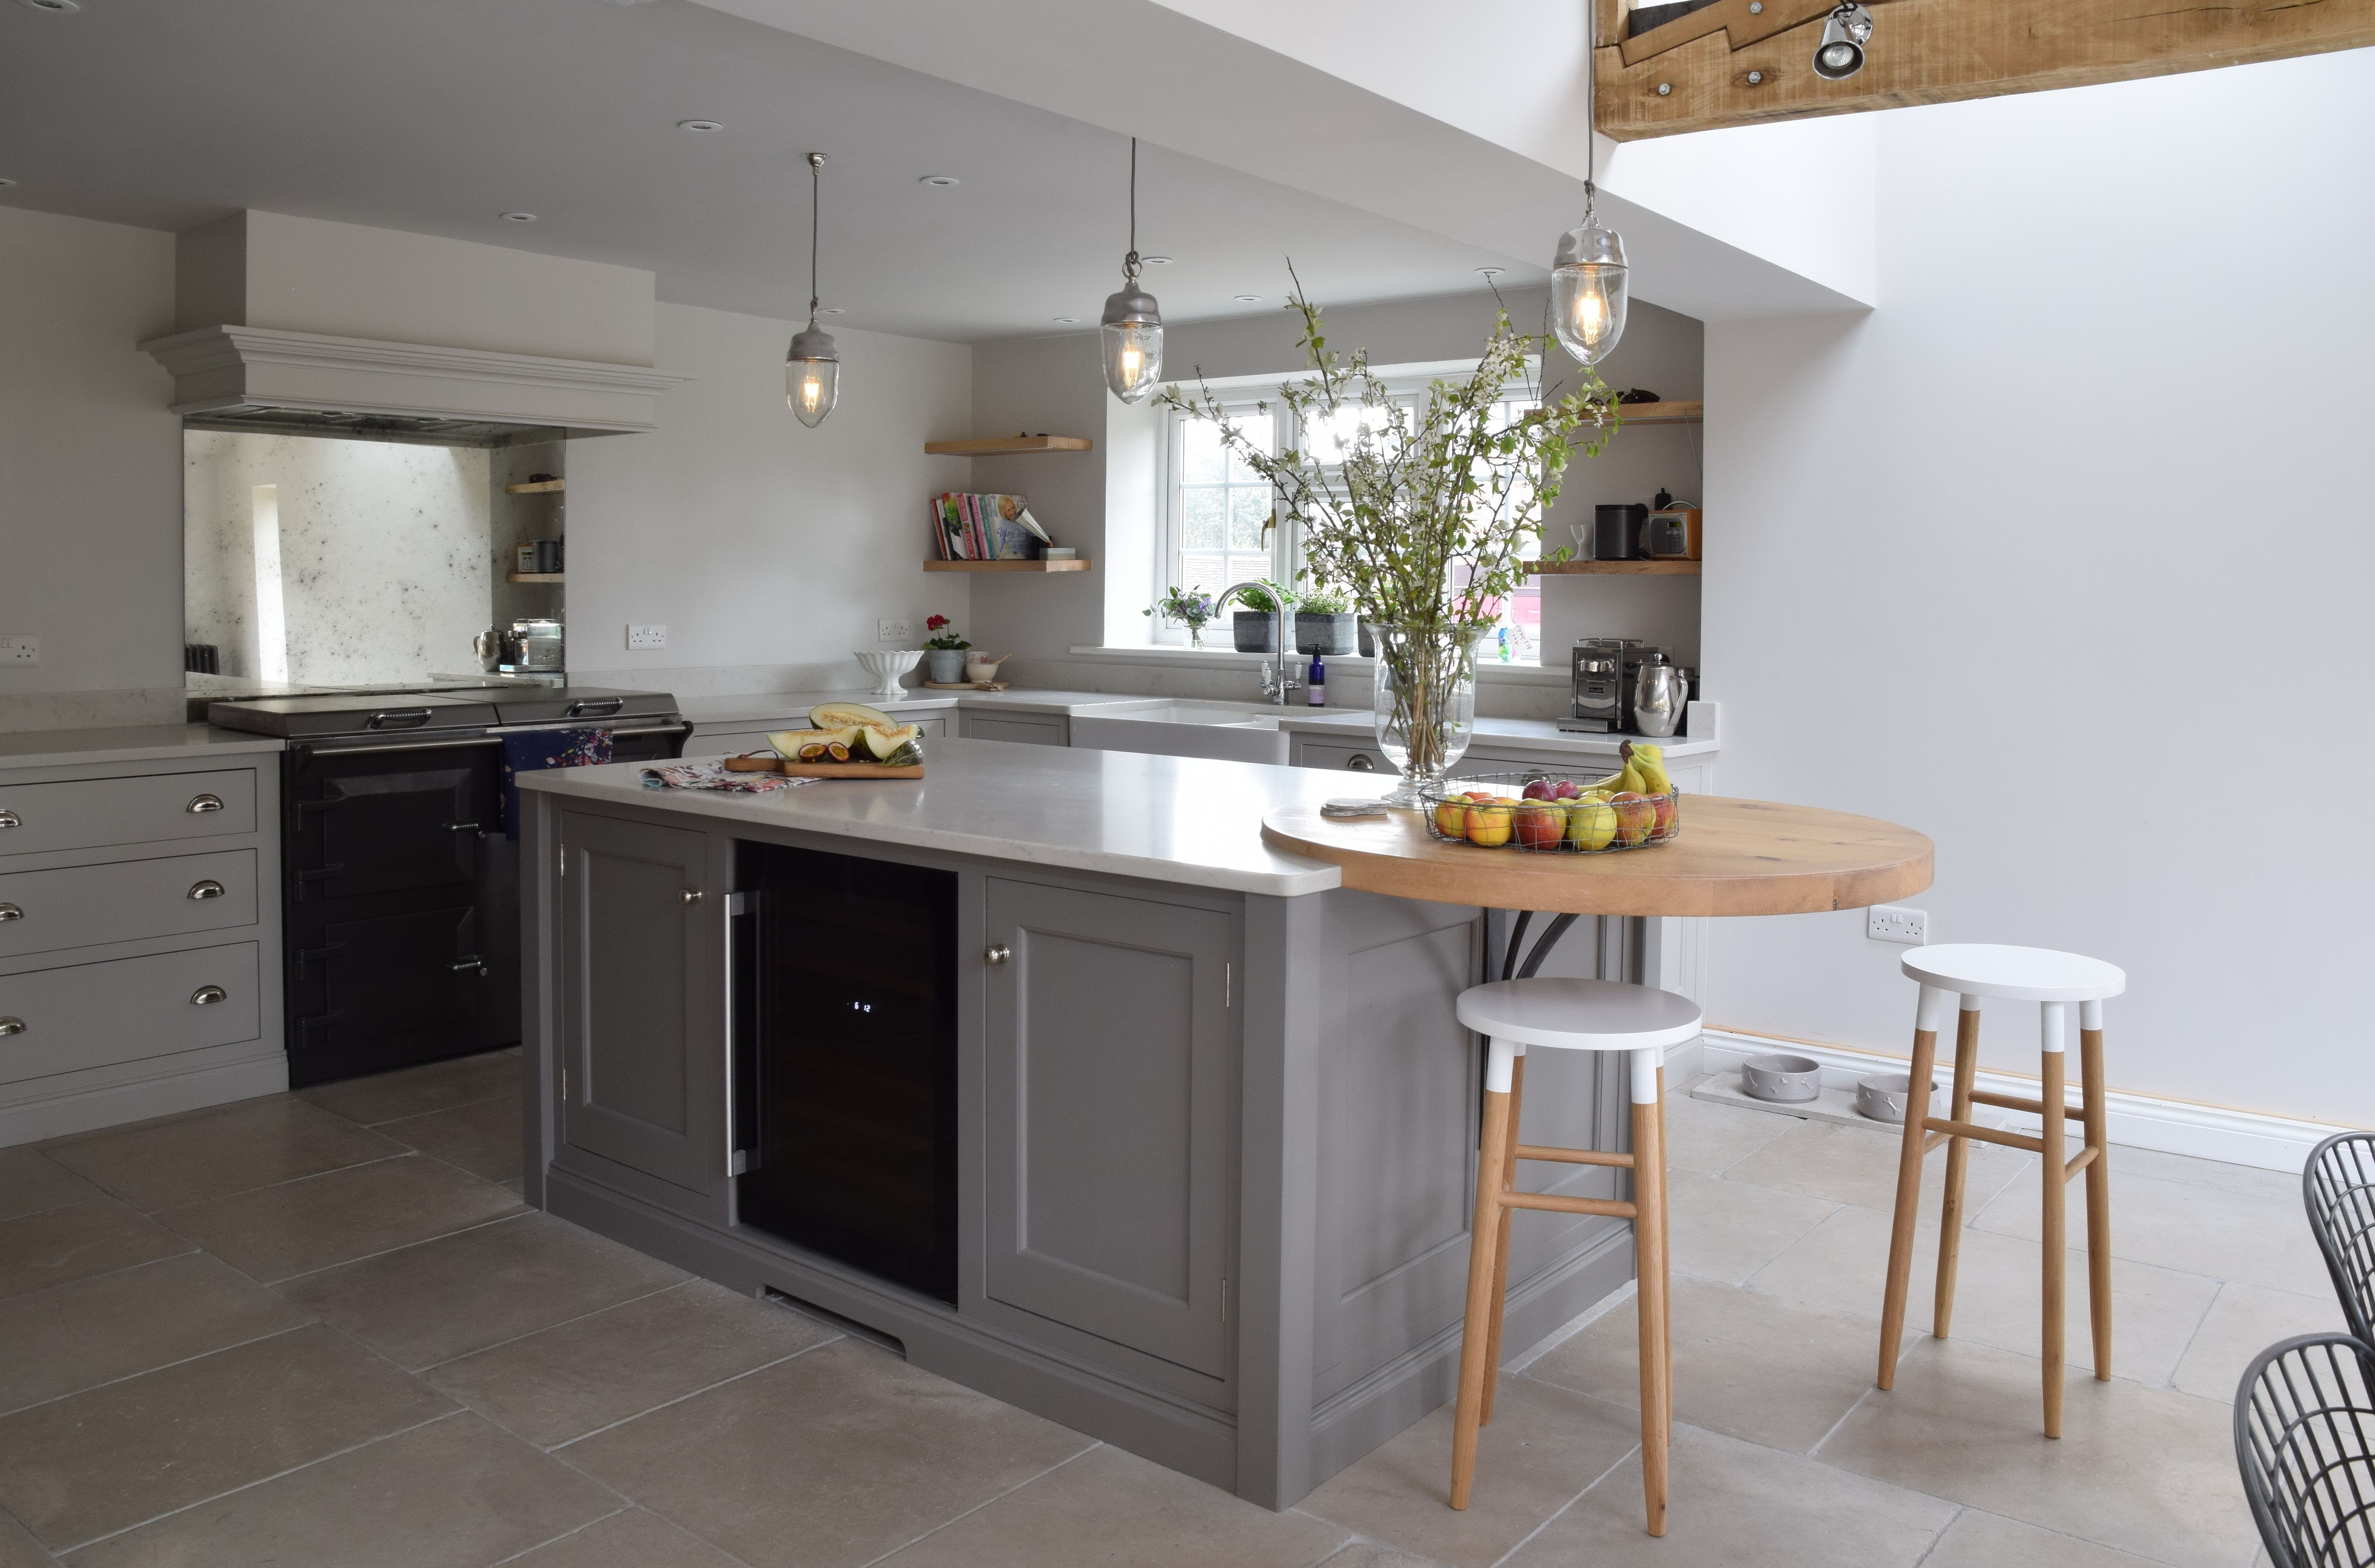 Guild Anderson Kitchen In Farrow And Ball Purbeck Stone And Moles Breath Island Kitchen Layout New Kitchen Cabinets New Kitchen